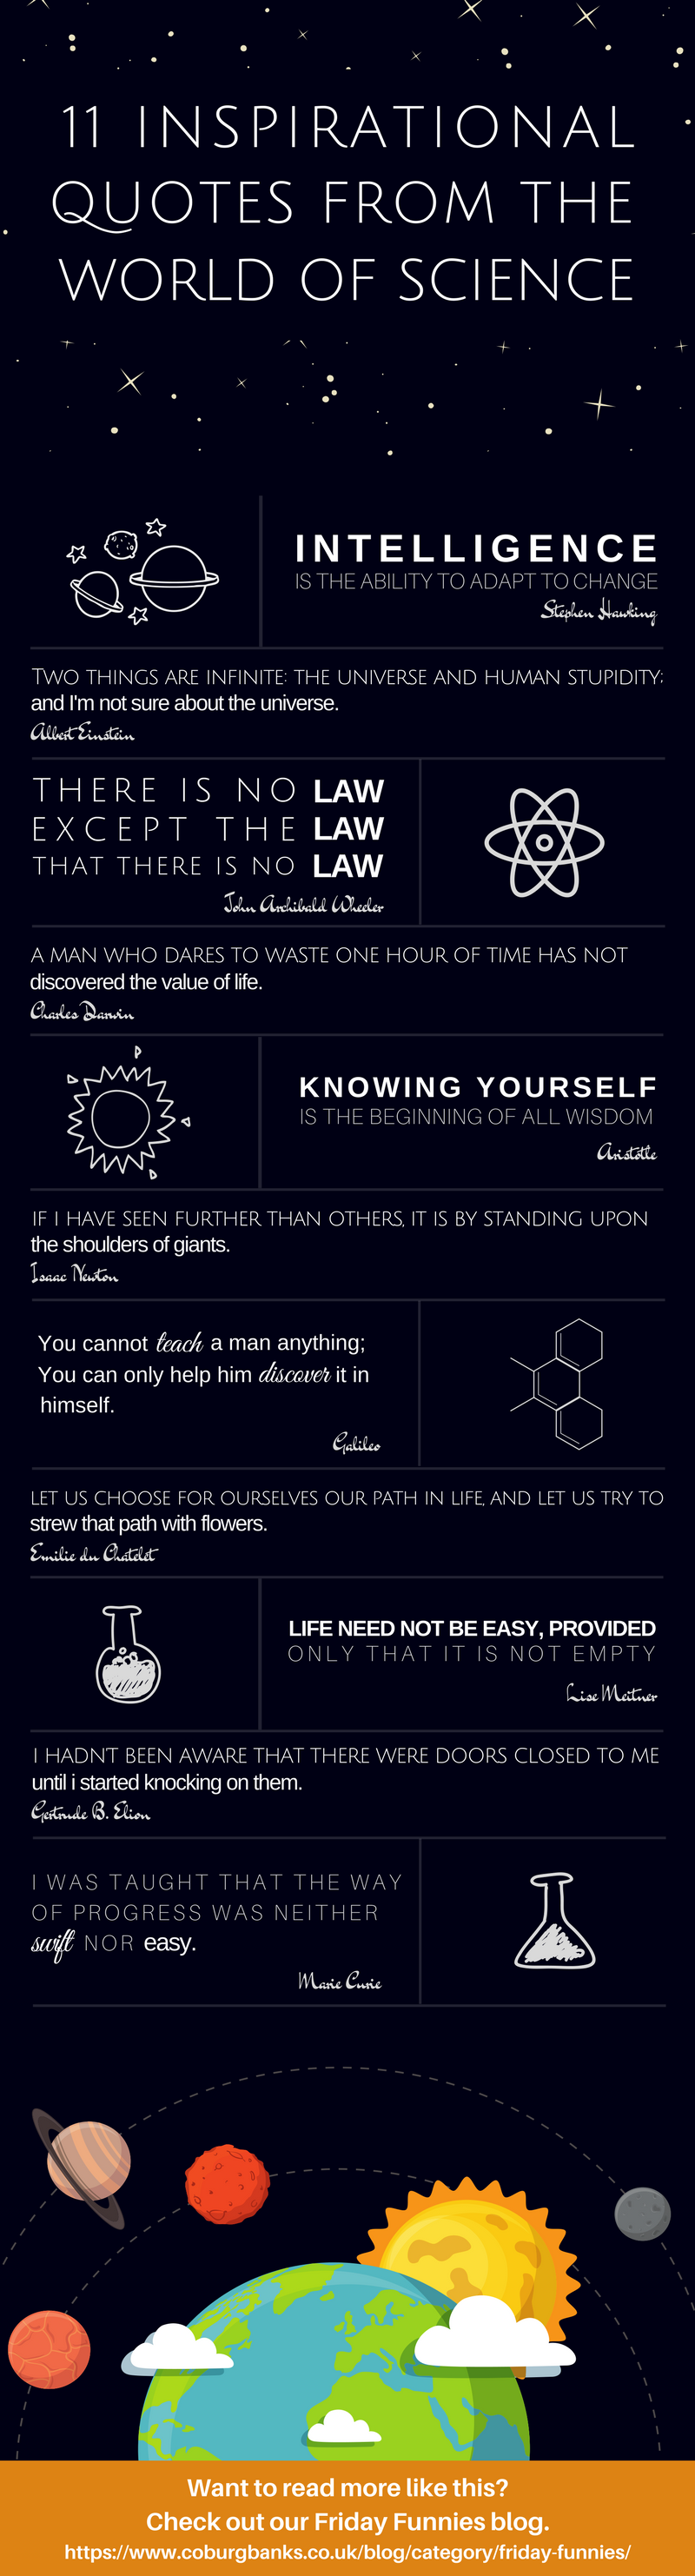 Quotes From Science: 11 Inspirational Quotes From The World Of Science